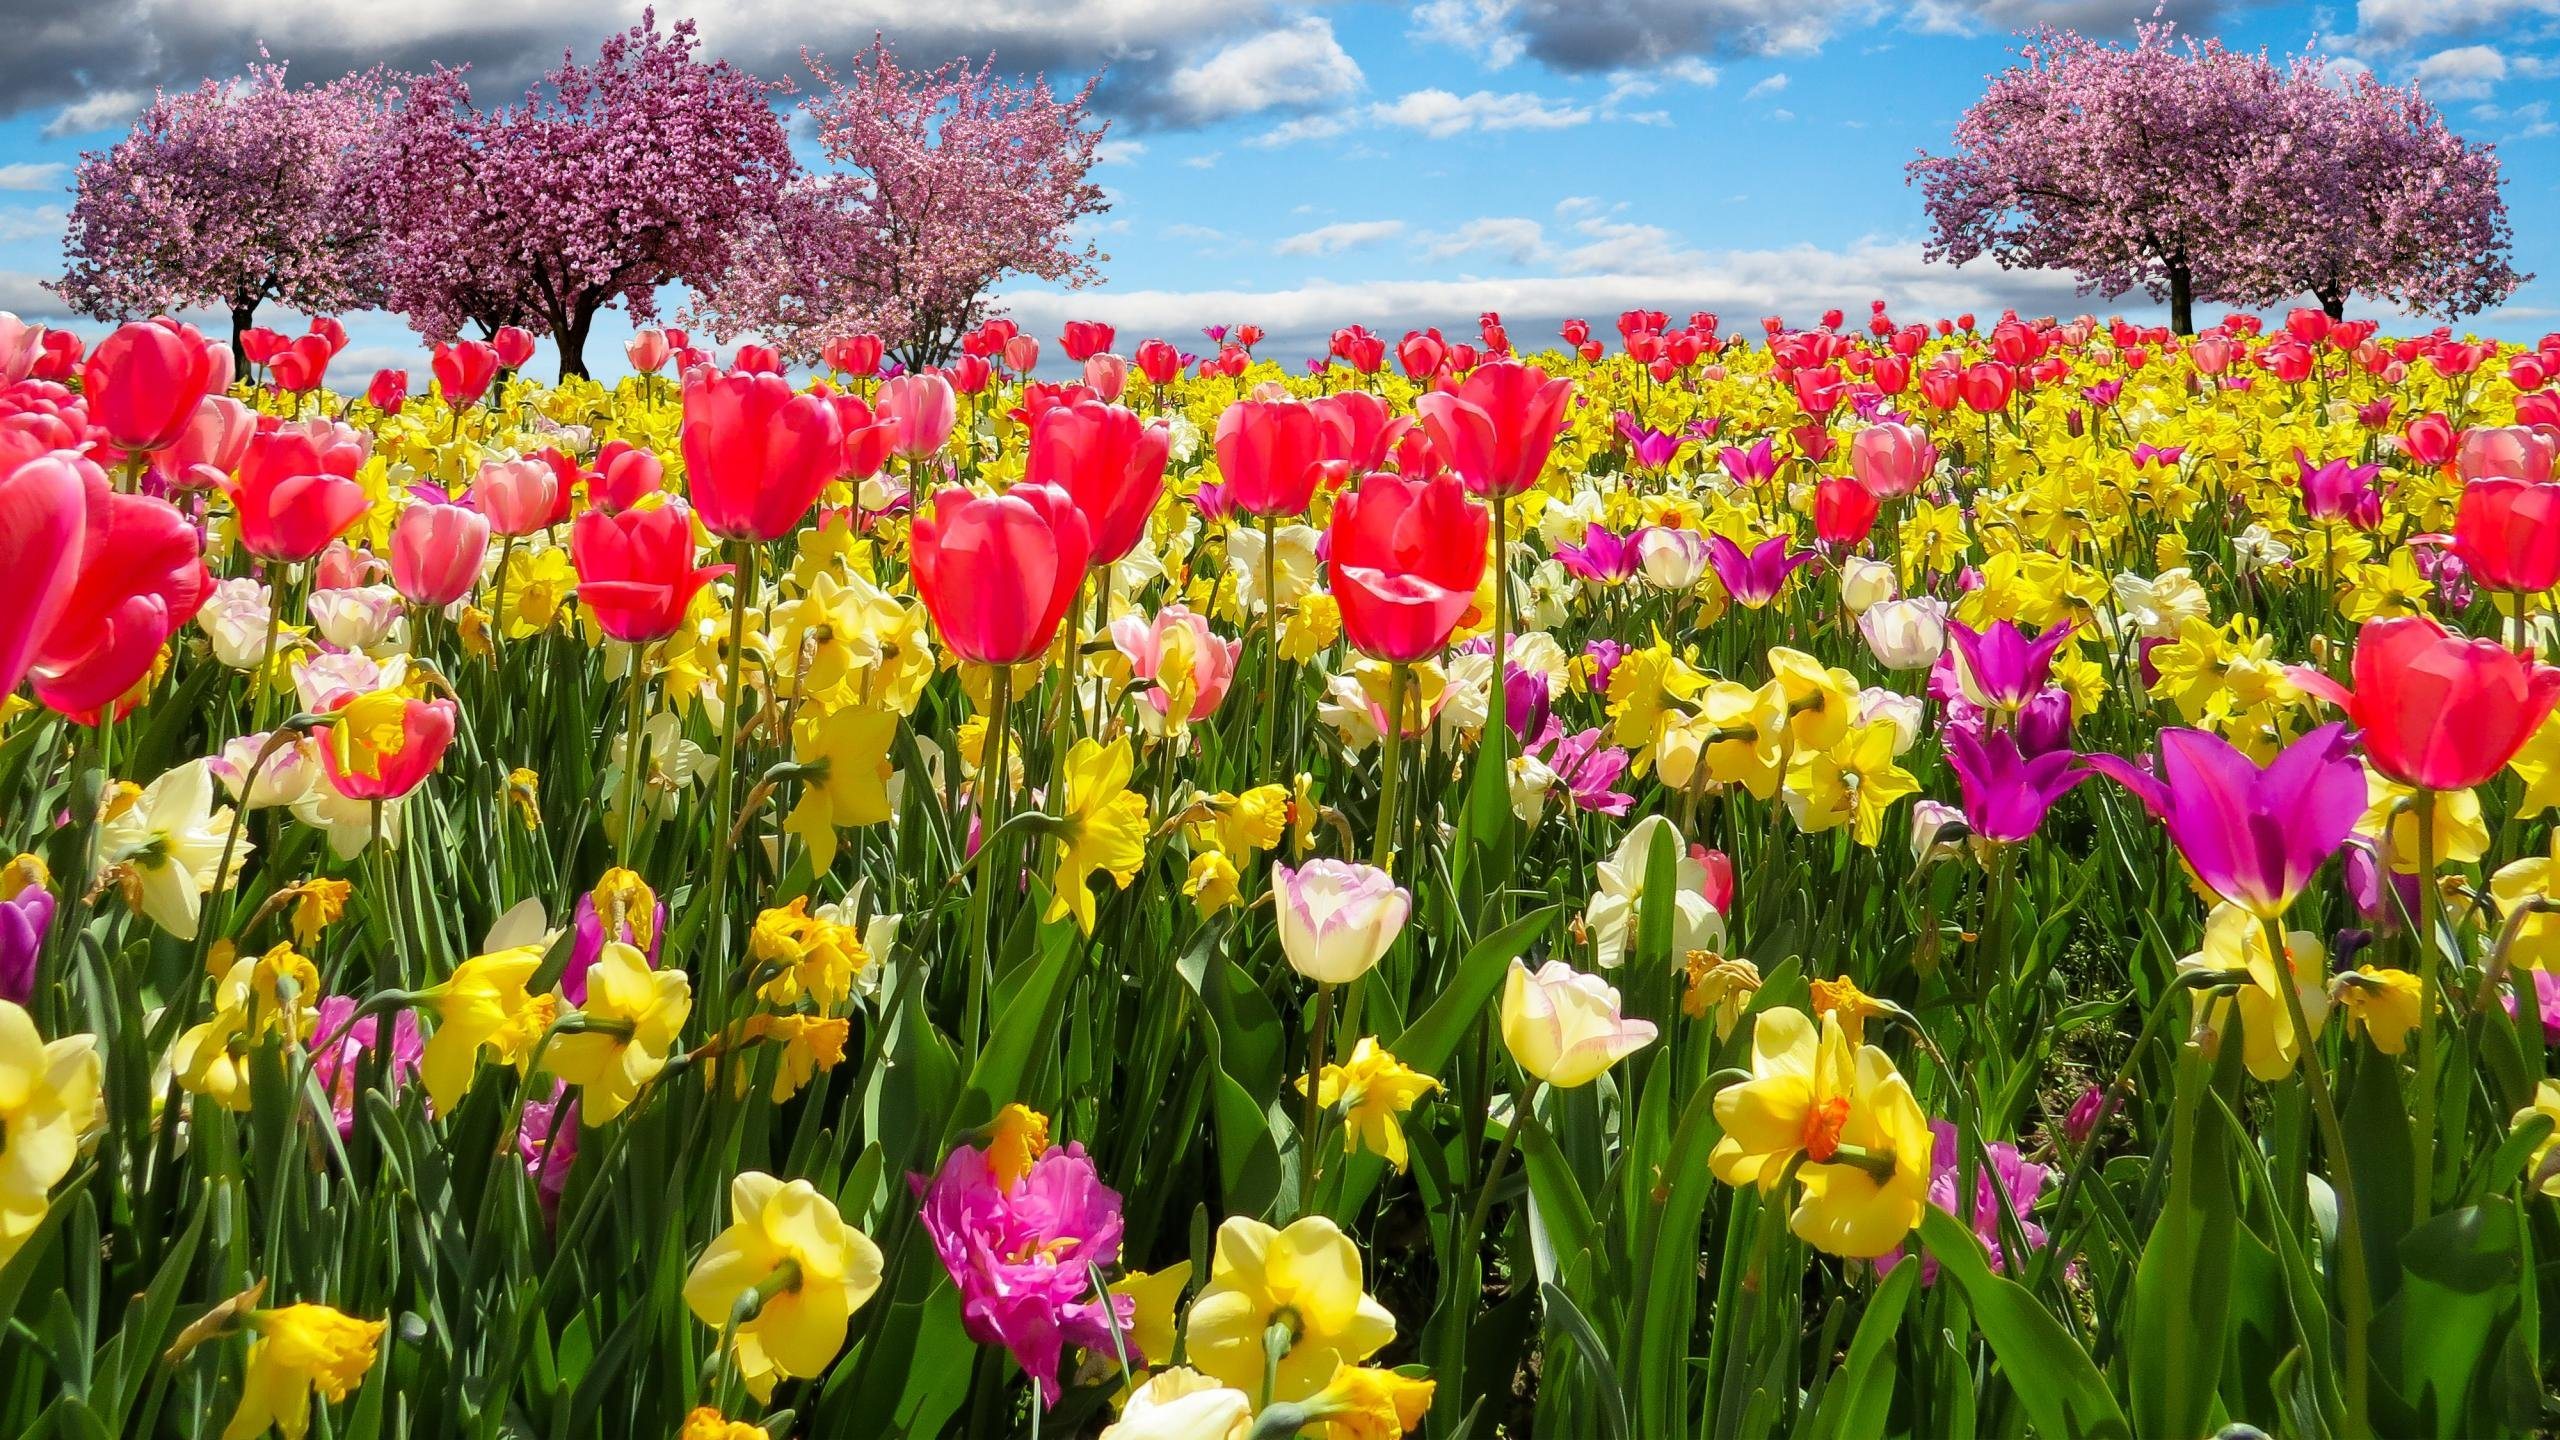 Awesome Spring free wallpaper ID:104146 for hd 2560x1440 desktop